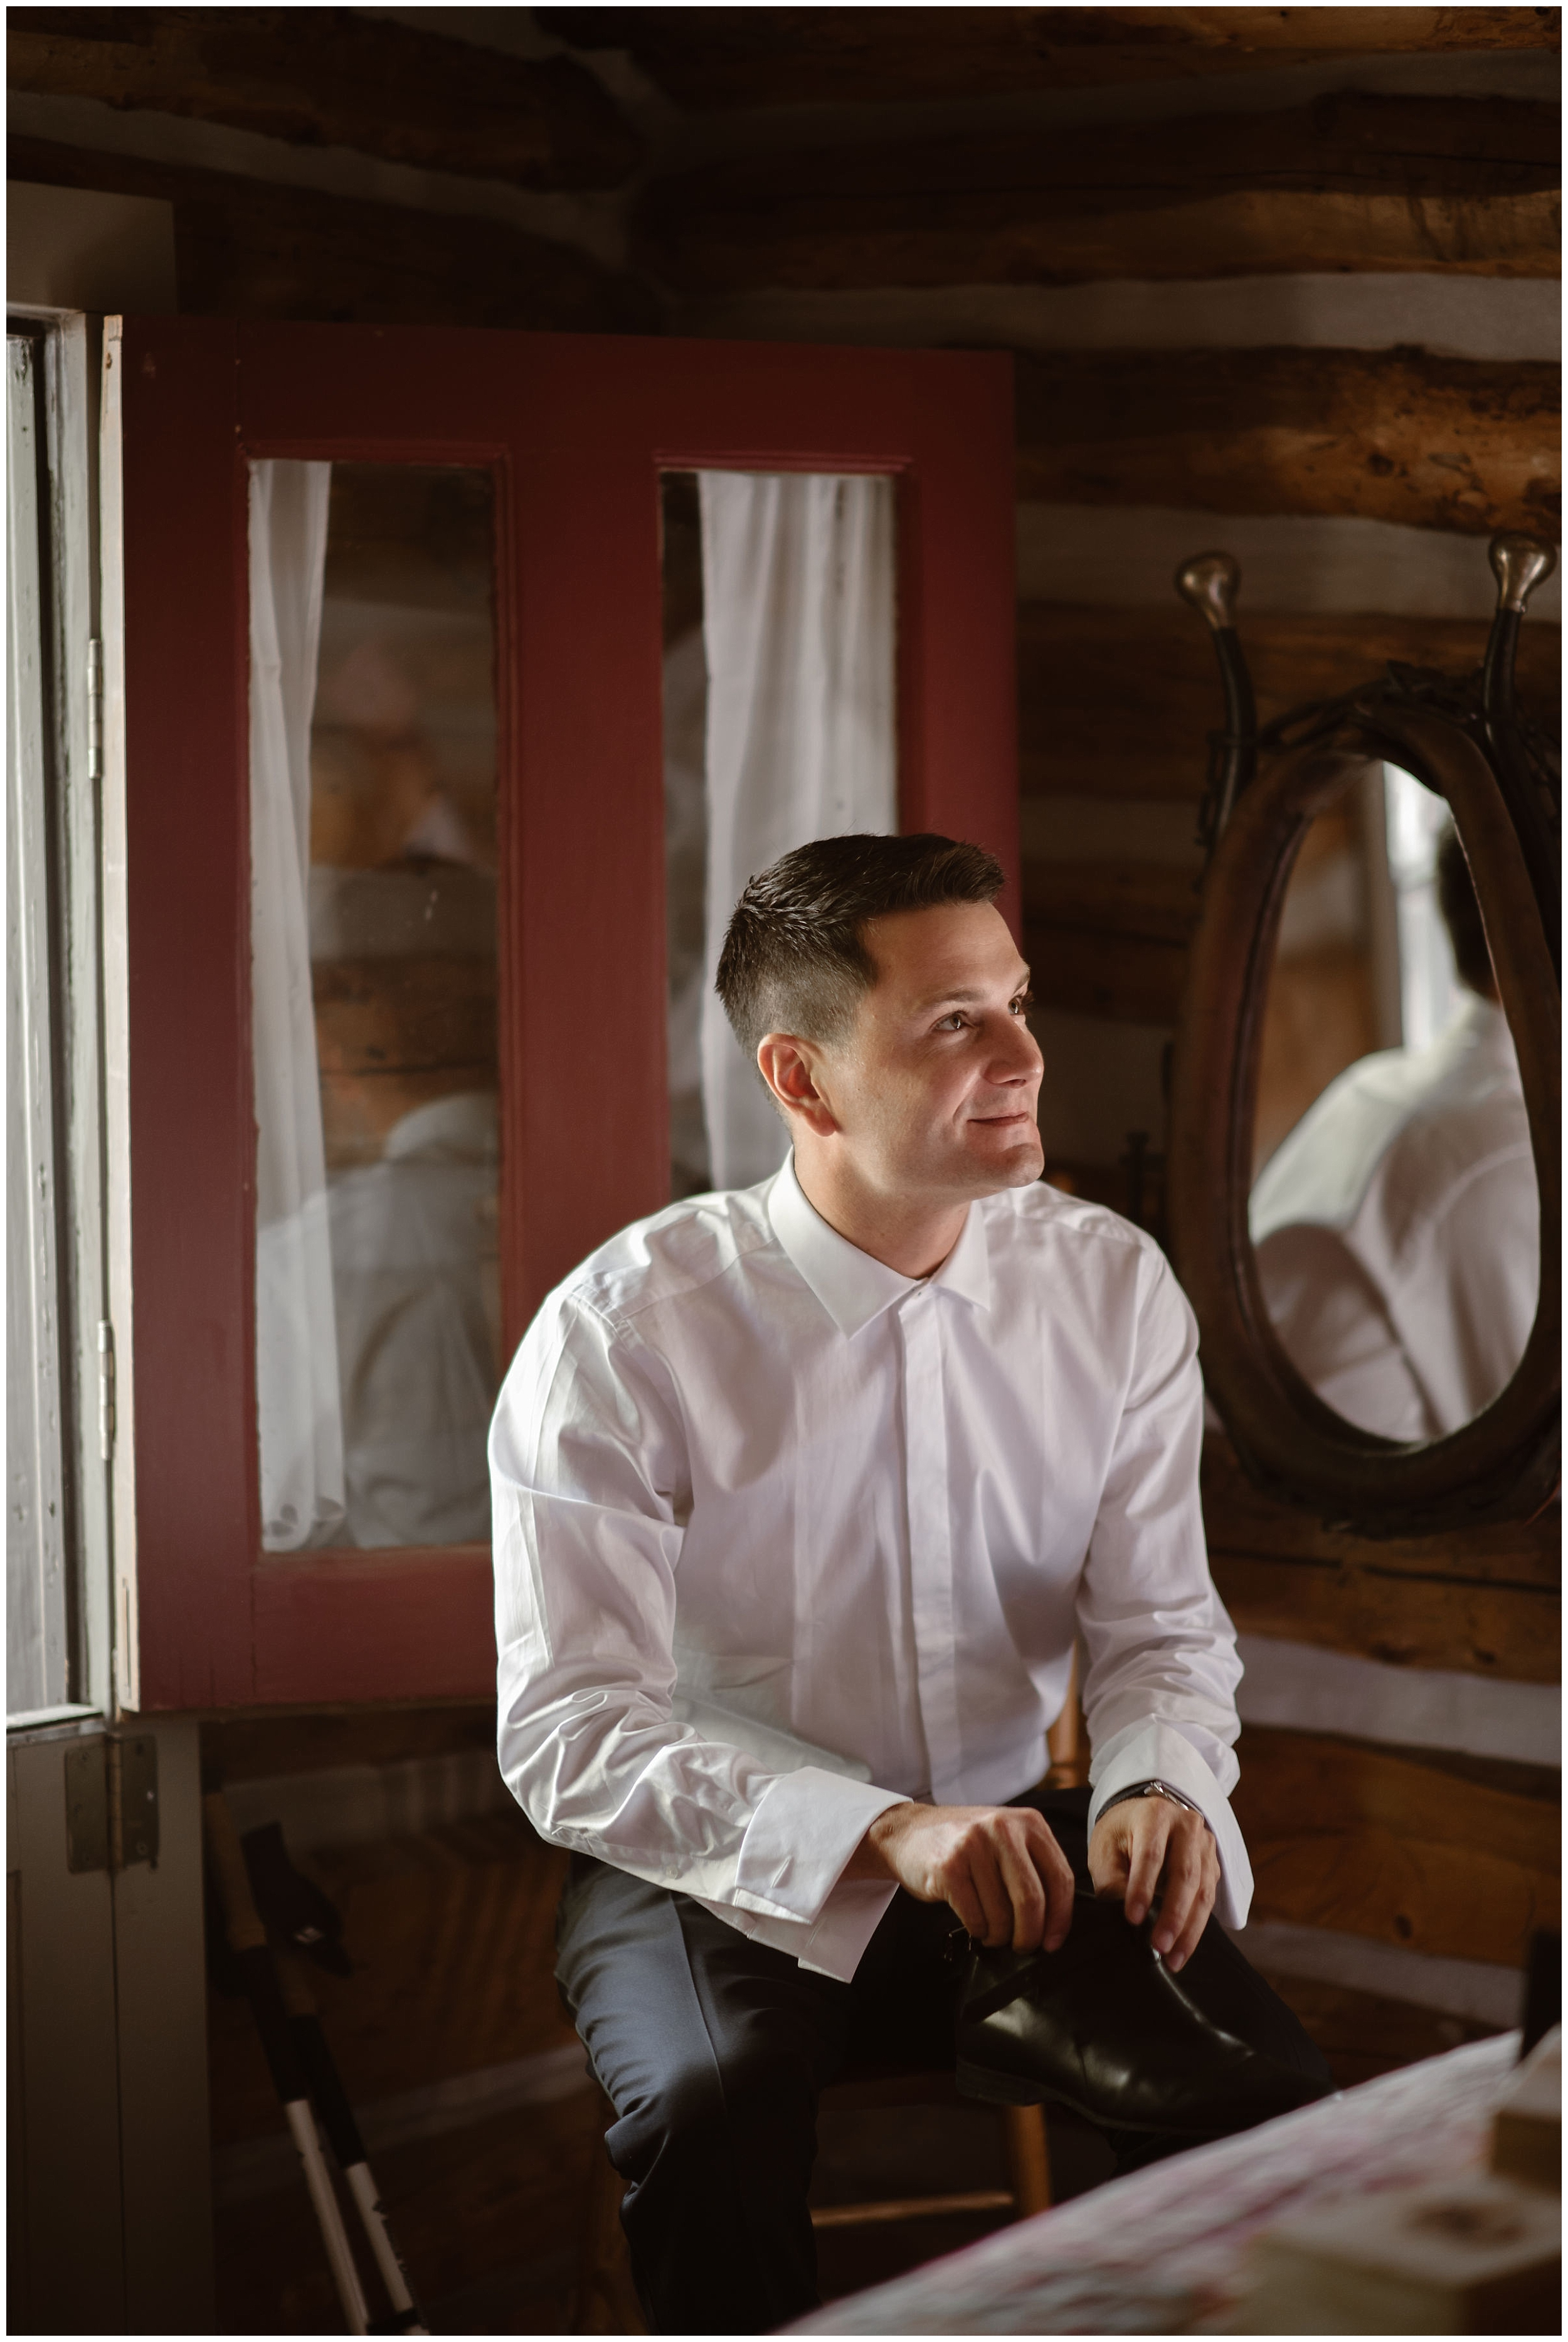 One of the grooms looks into the distance at his soon-to-be husband inside their rented VRBO cabin. He smiles as he holds his dress shoe in his hand while getting ready for their Colorado destination wedding.